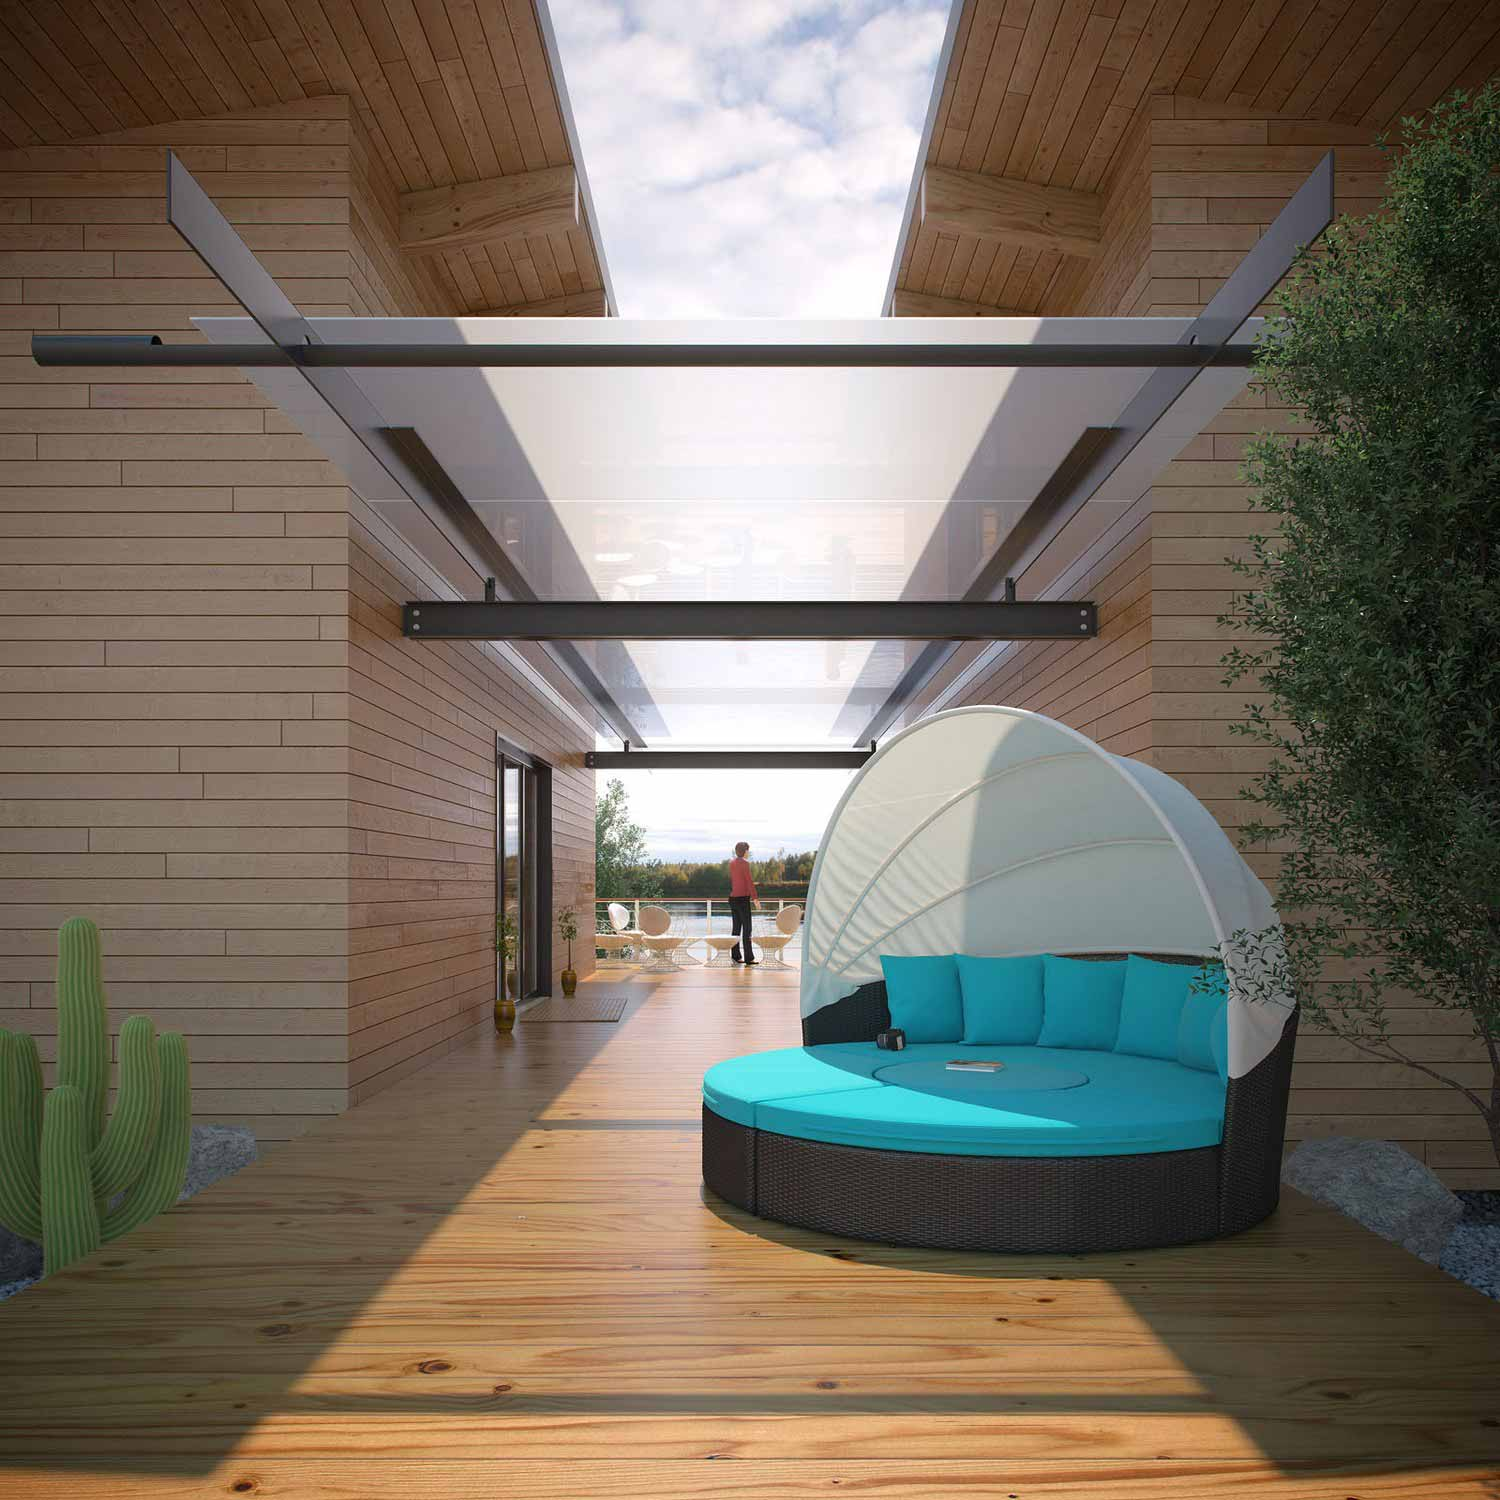 Modway Convene Canopy Outdoor Patio Daybed - Espresso/Turquoise